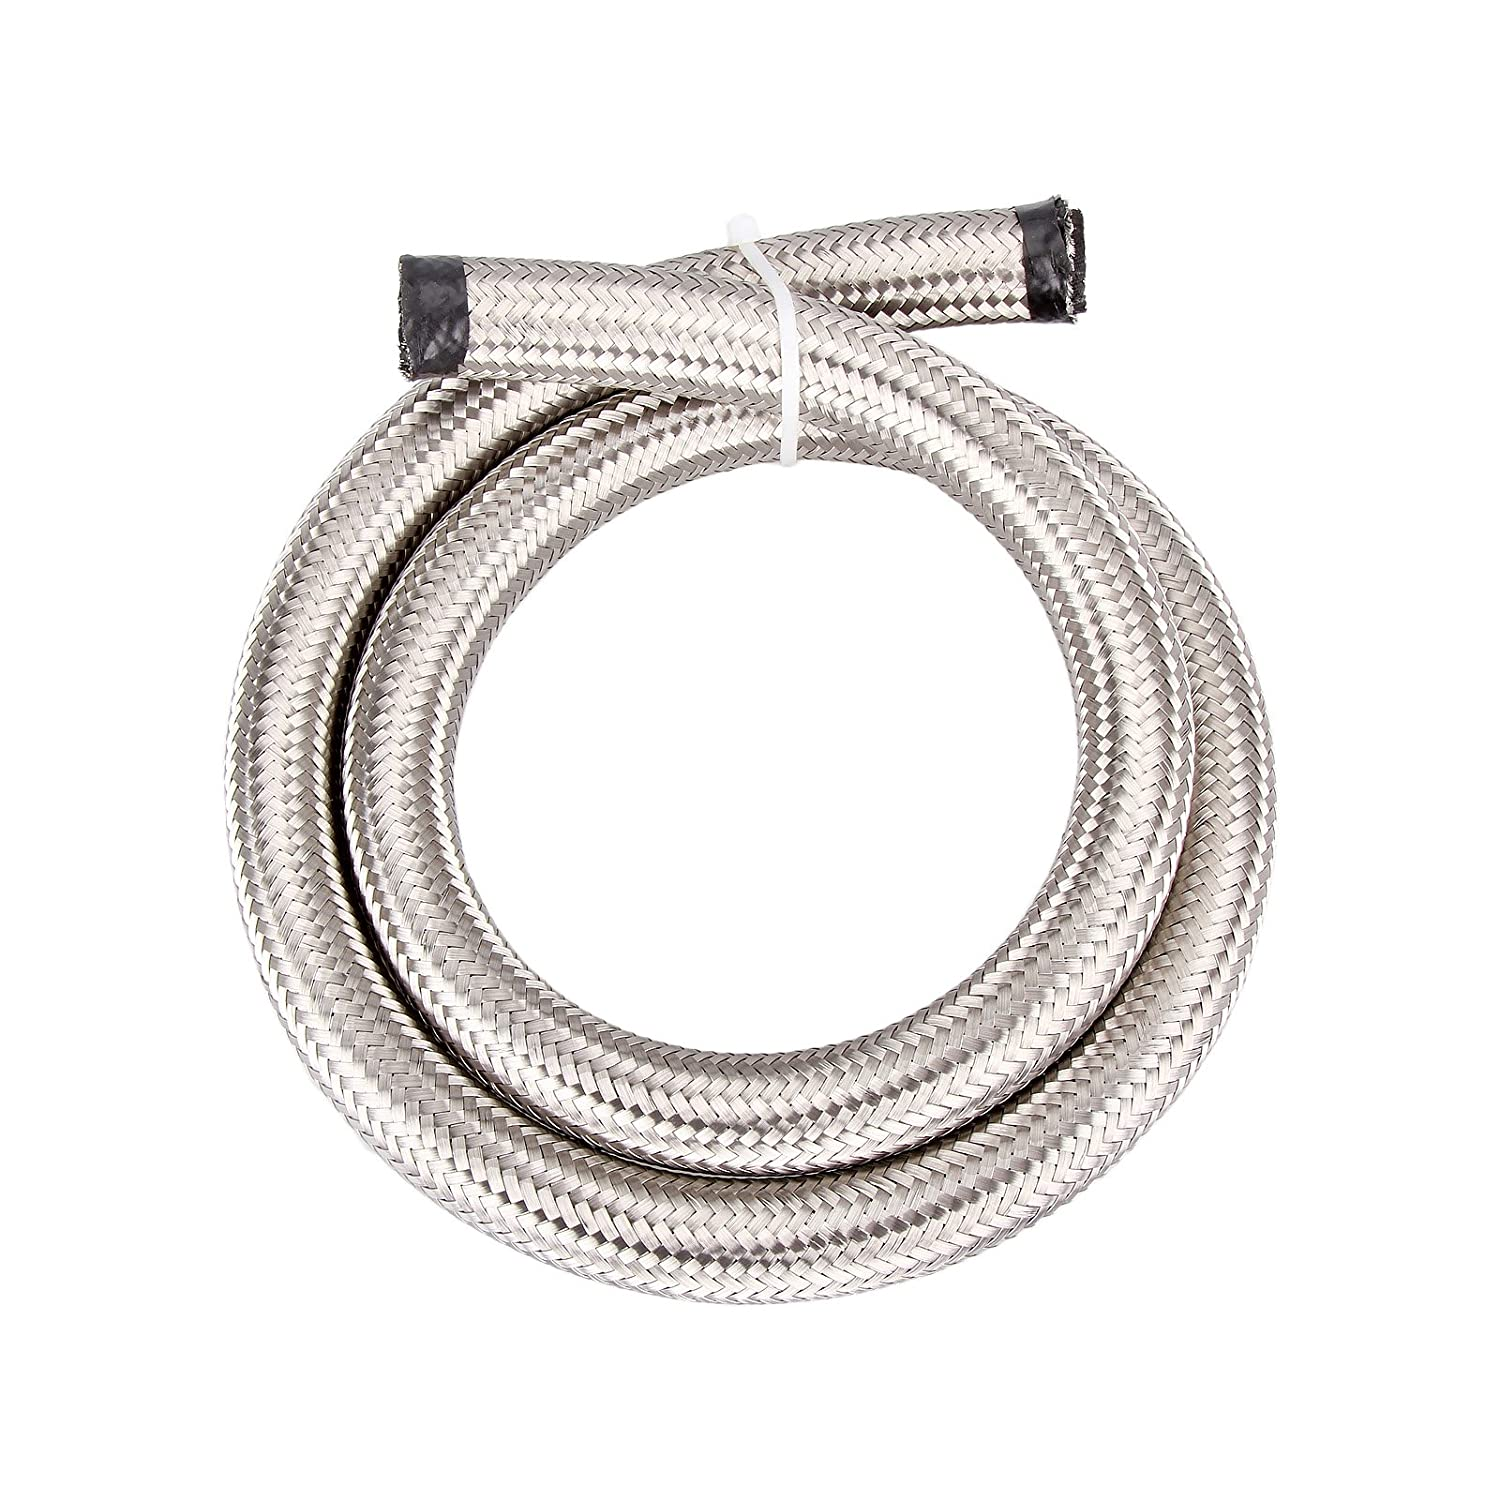 Madlife Garage Universal AN-10 AN10#308 Stainless Steel Braided Fuel Line Oil Gas Hose each 1 Meter/3.3 Ft Long